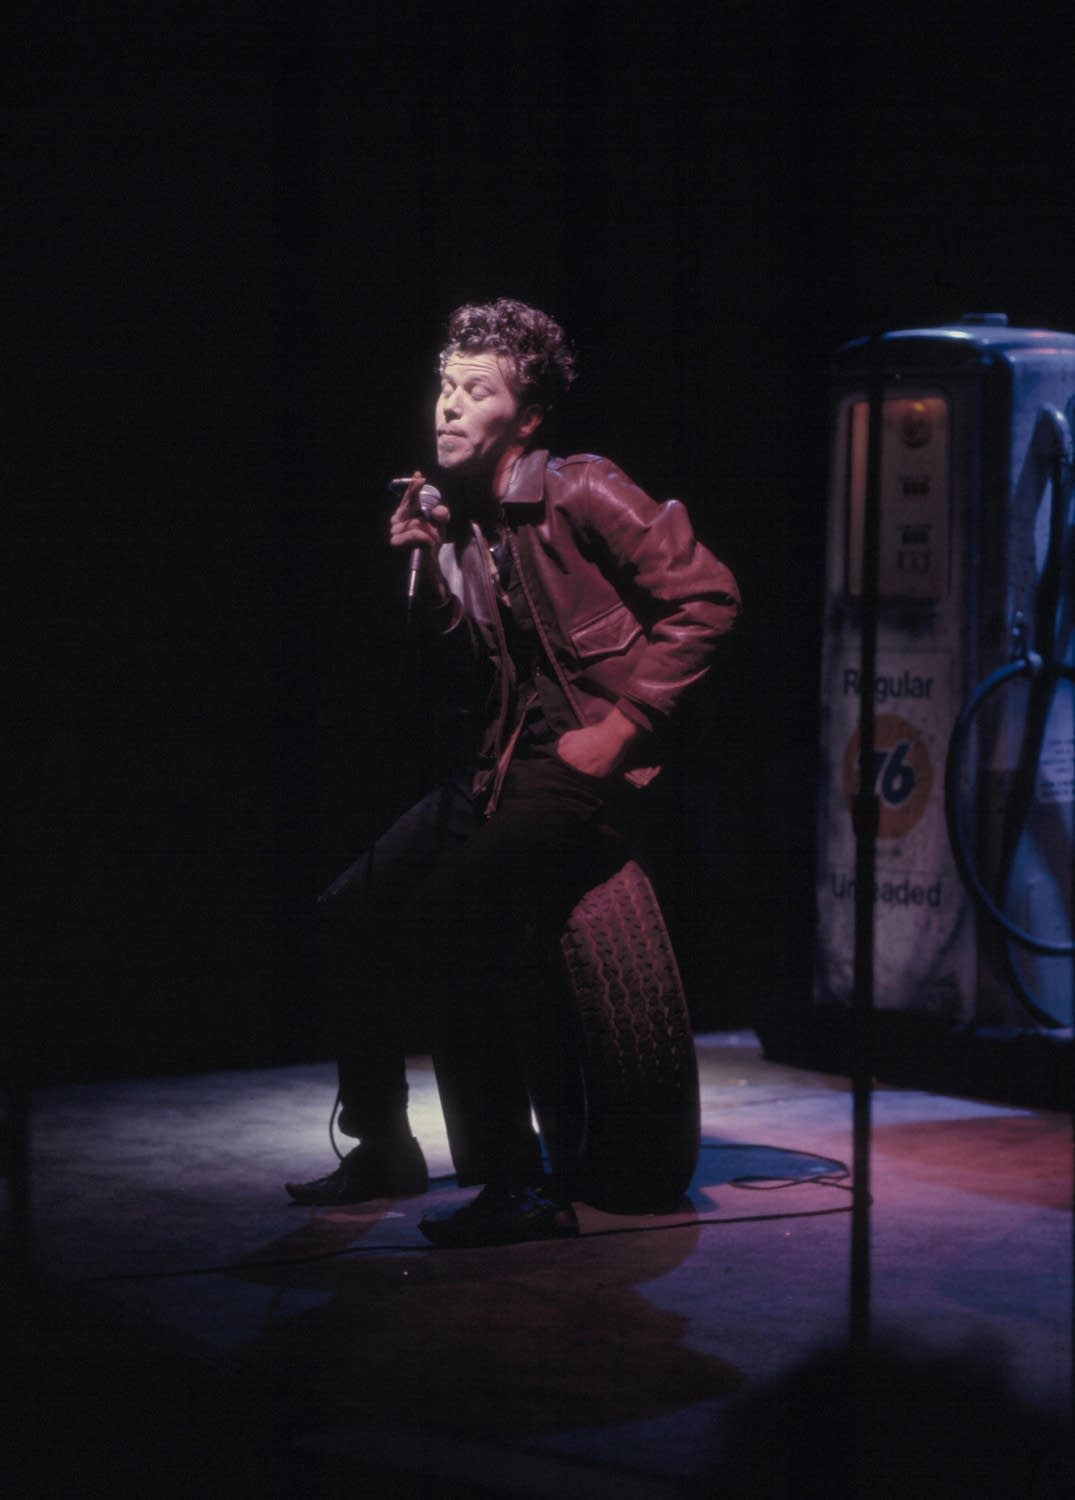 Tom Waits performs on 'Austin City Limits' in 1979